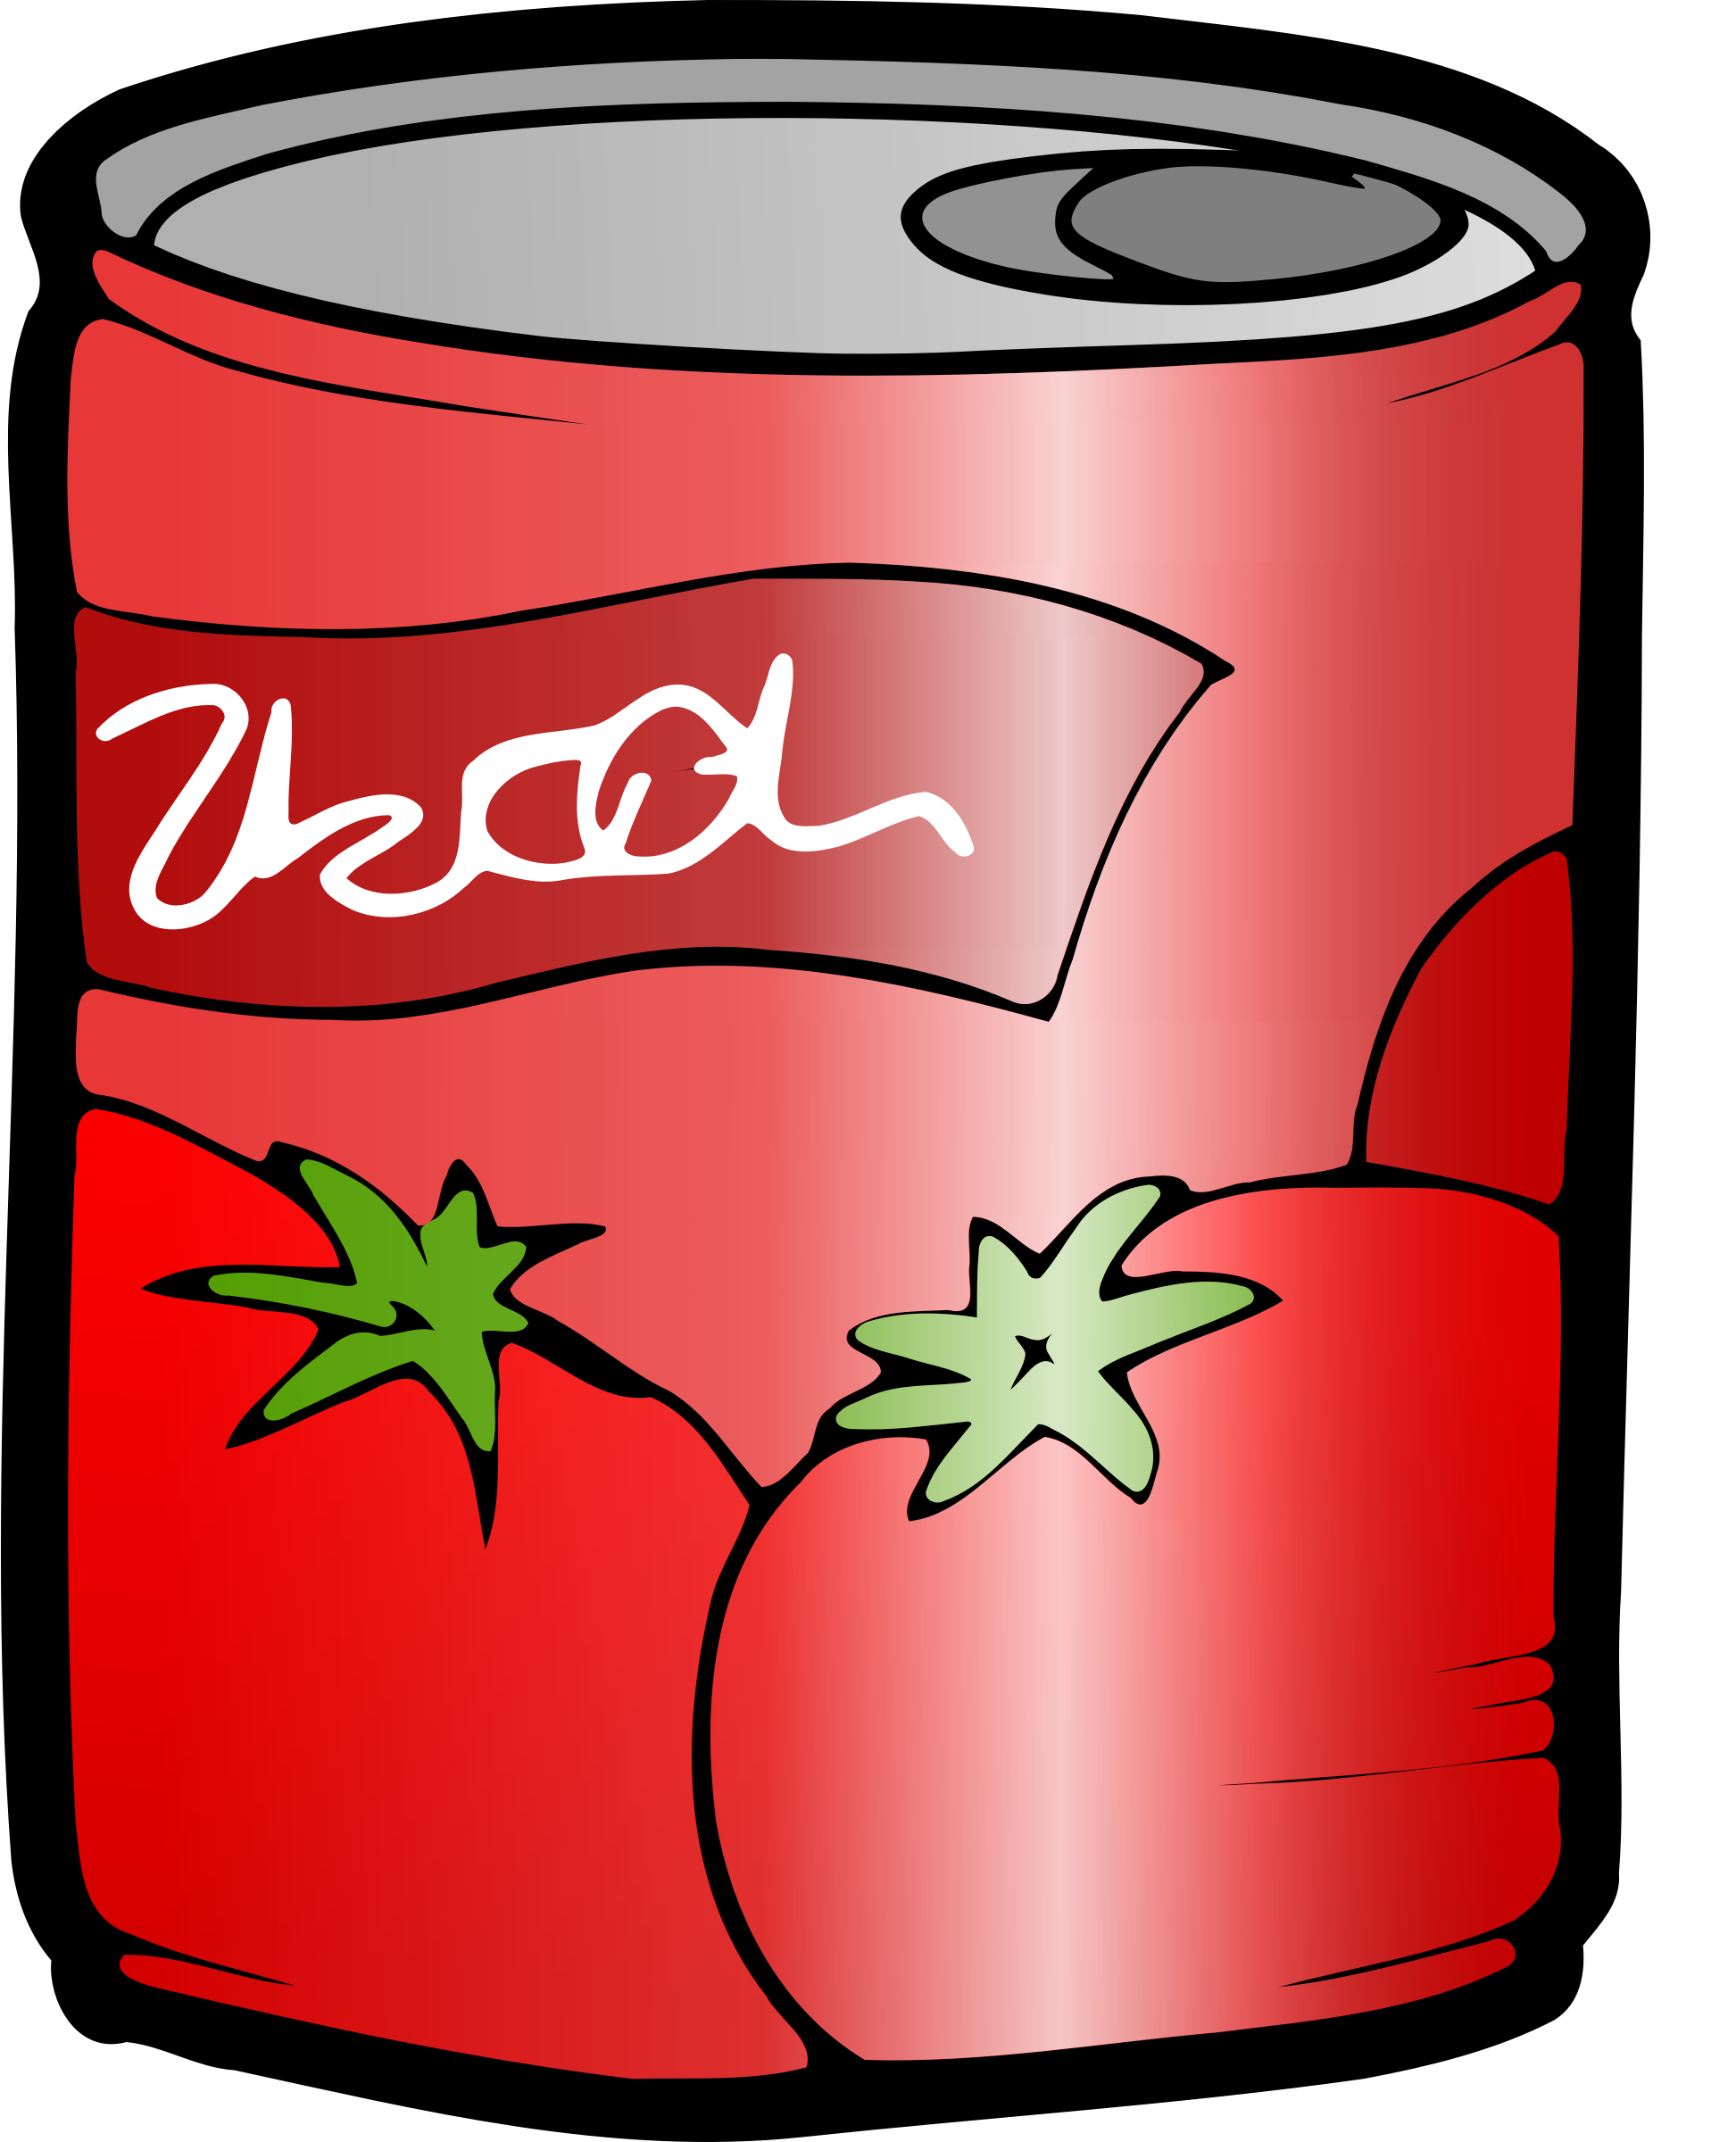 Can of Tomato Juice by j4p4n